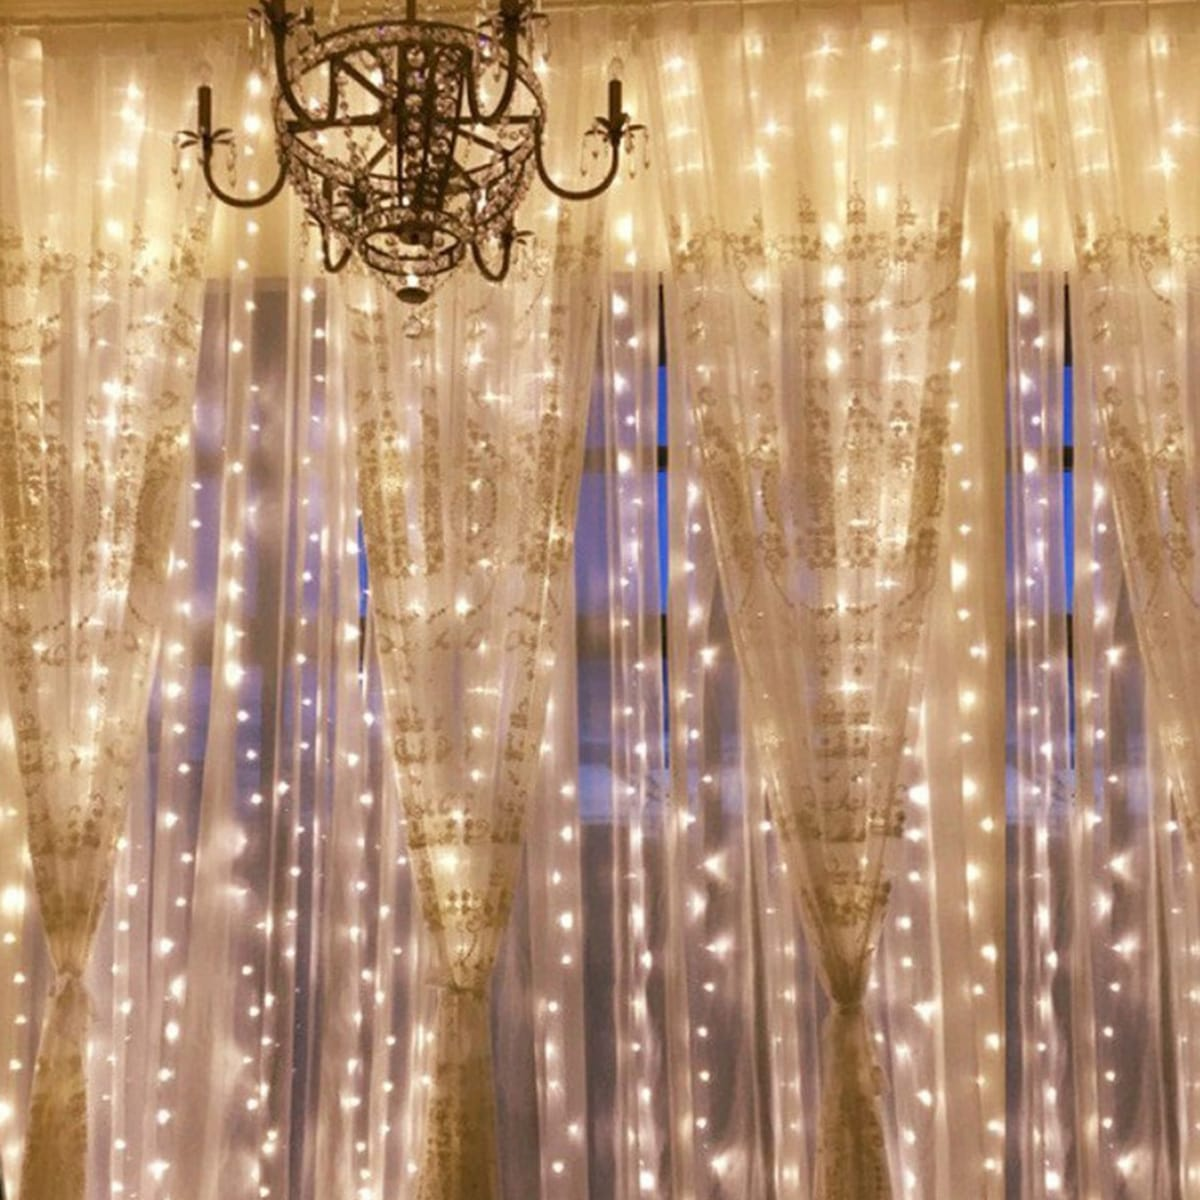 SHEIN coupon: 1 String Blub Light With 20 Small Bulbs